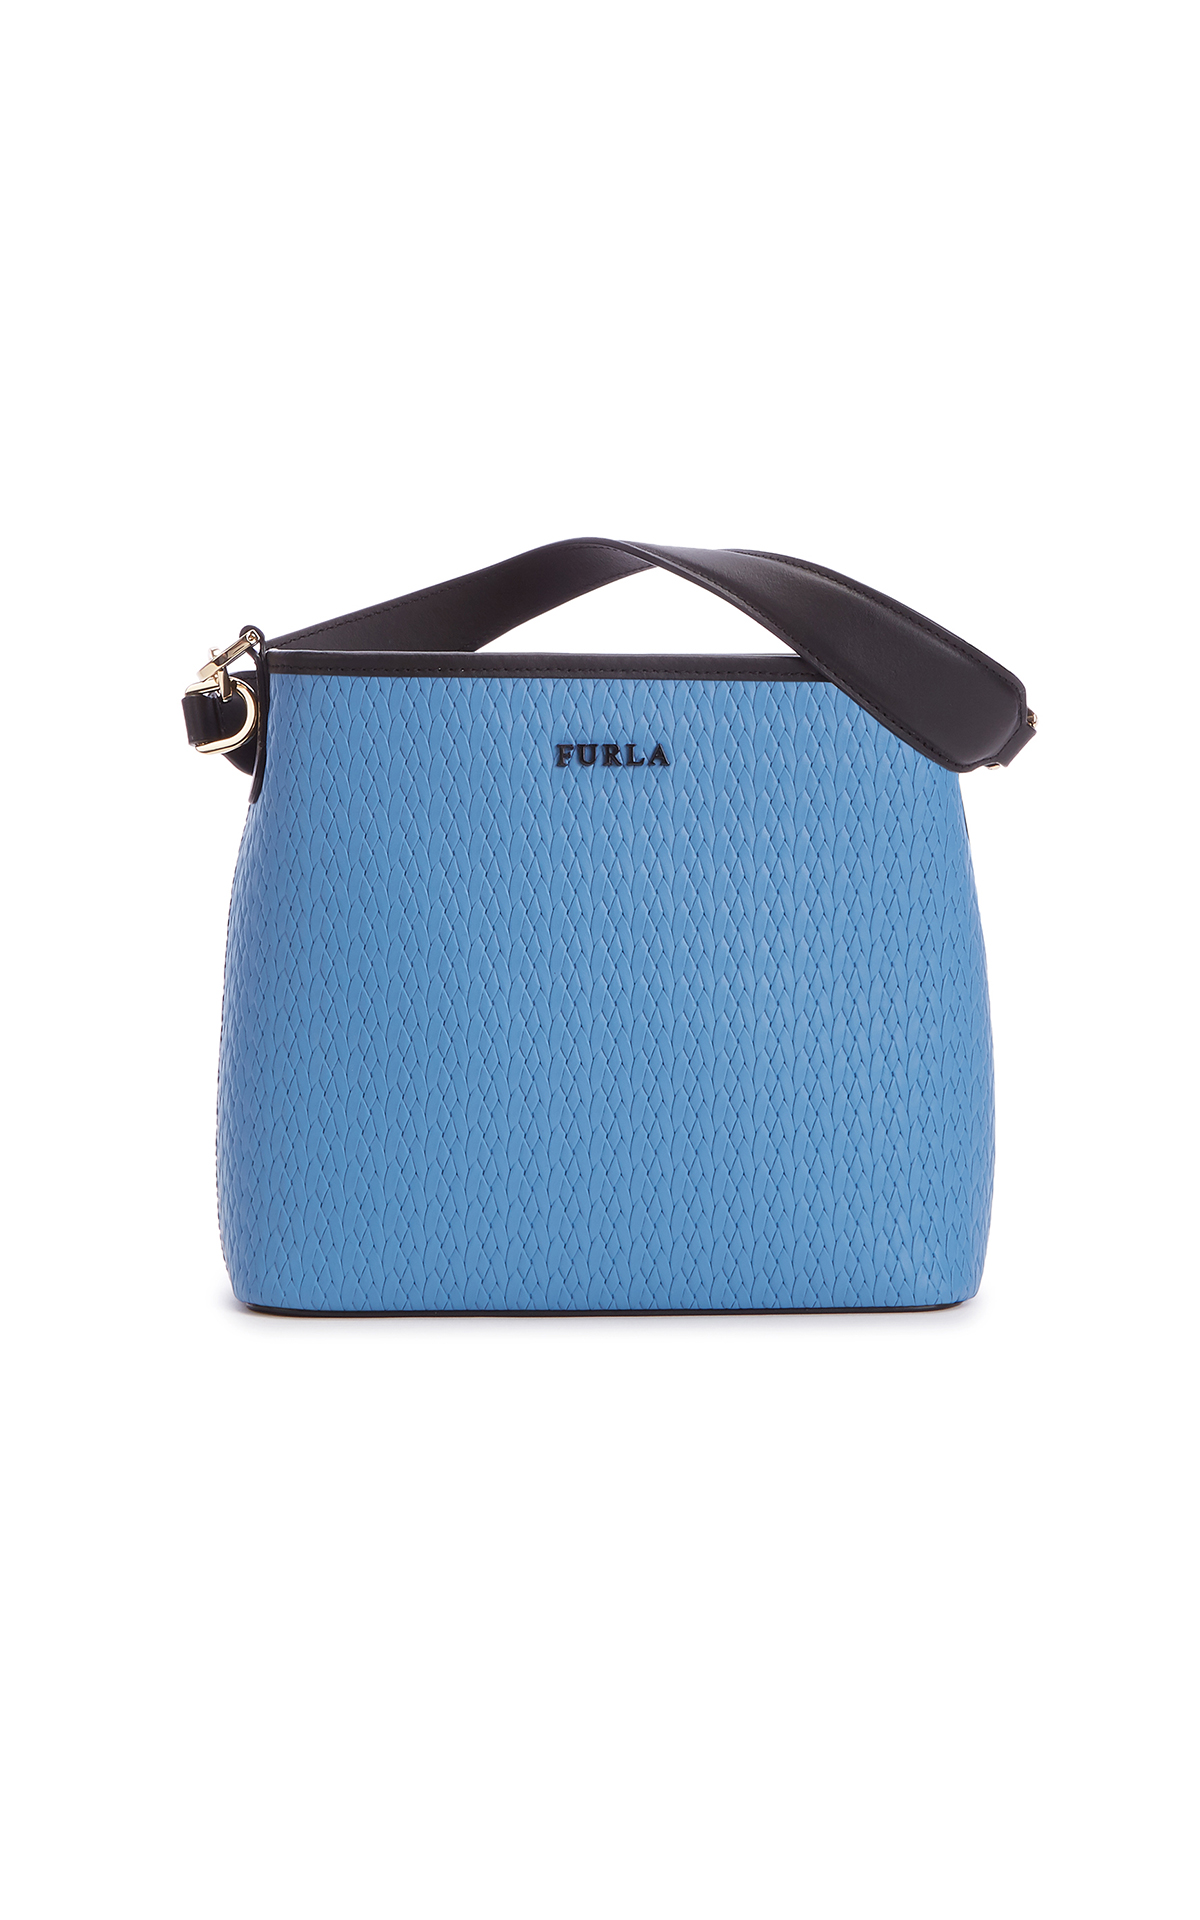 Furla Penny small Bucket Bag in blue